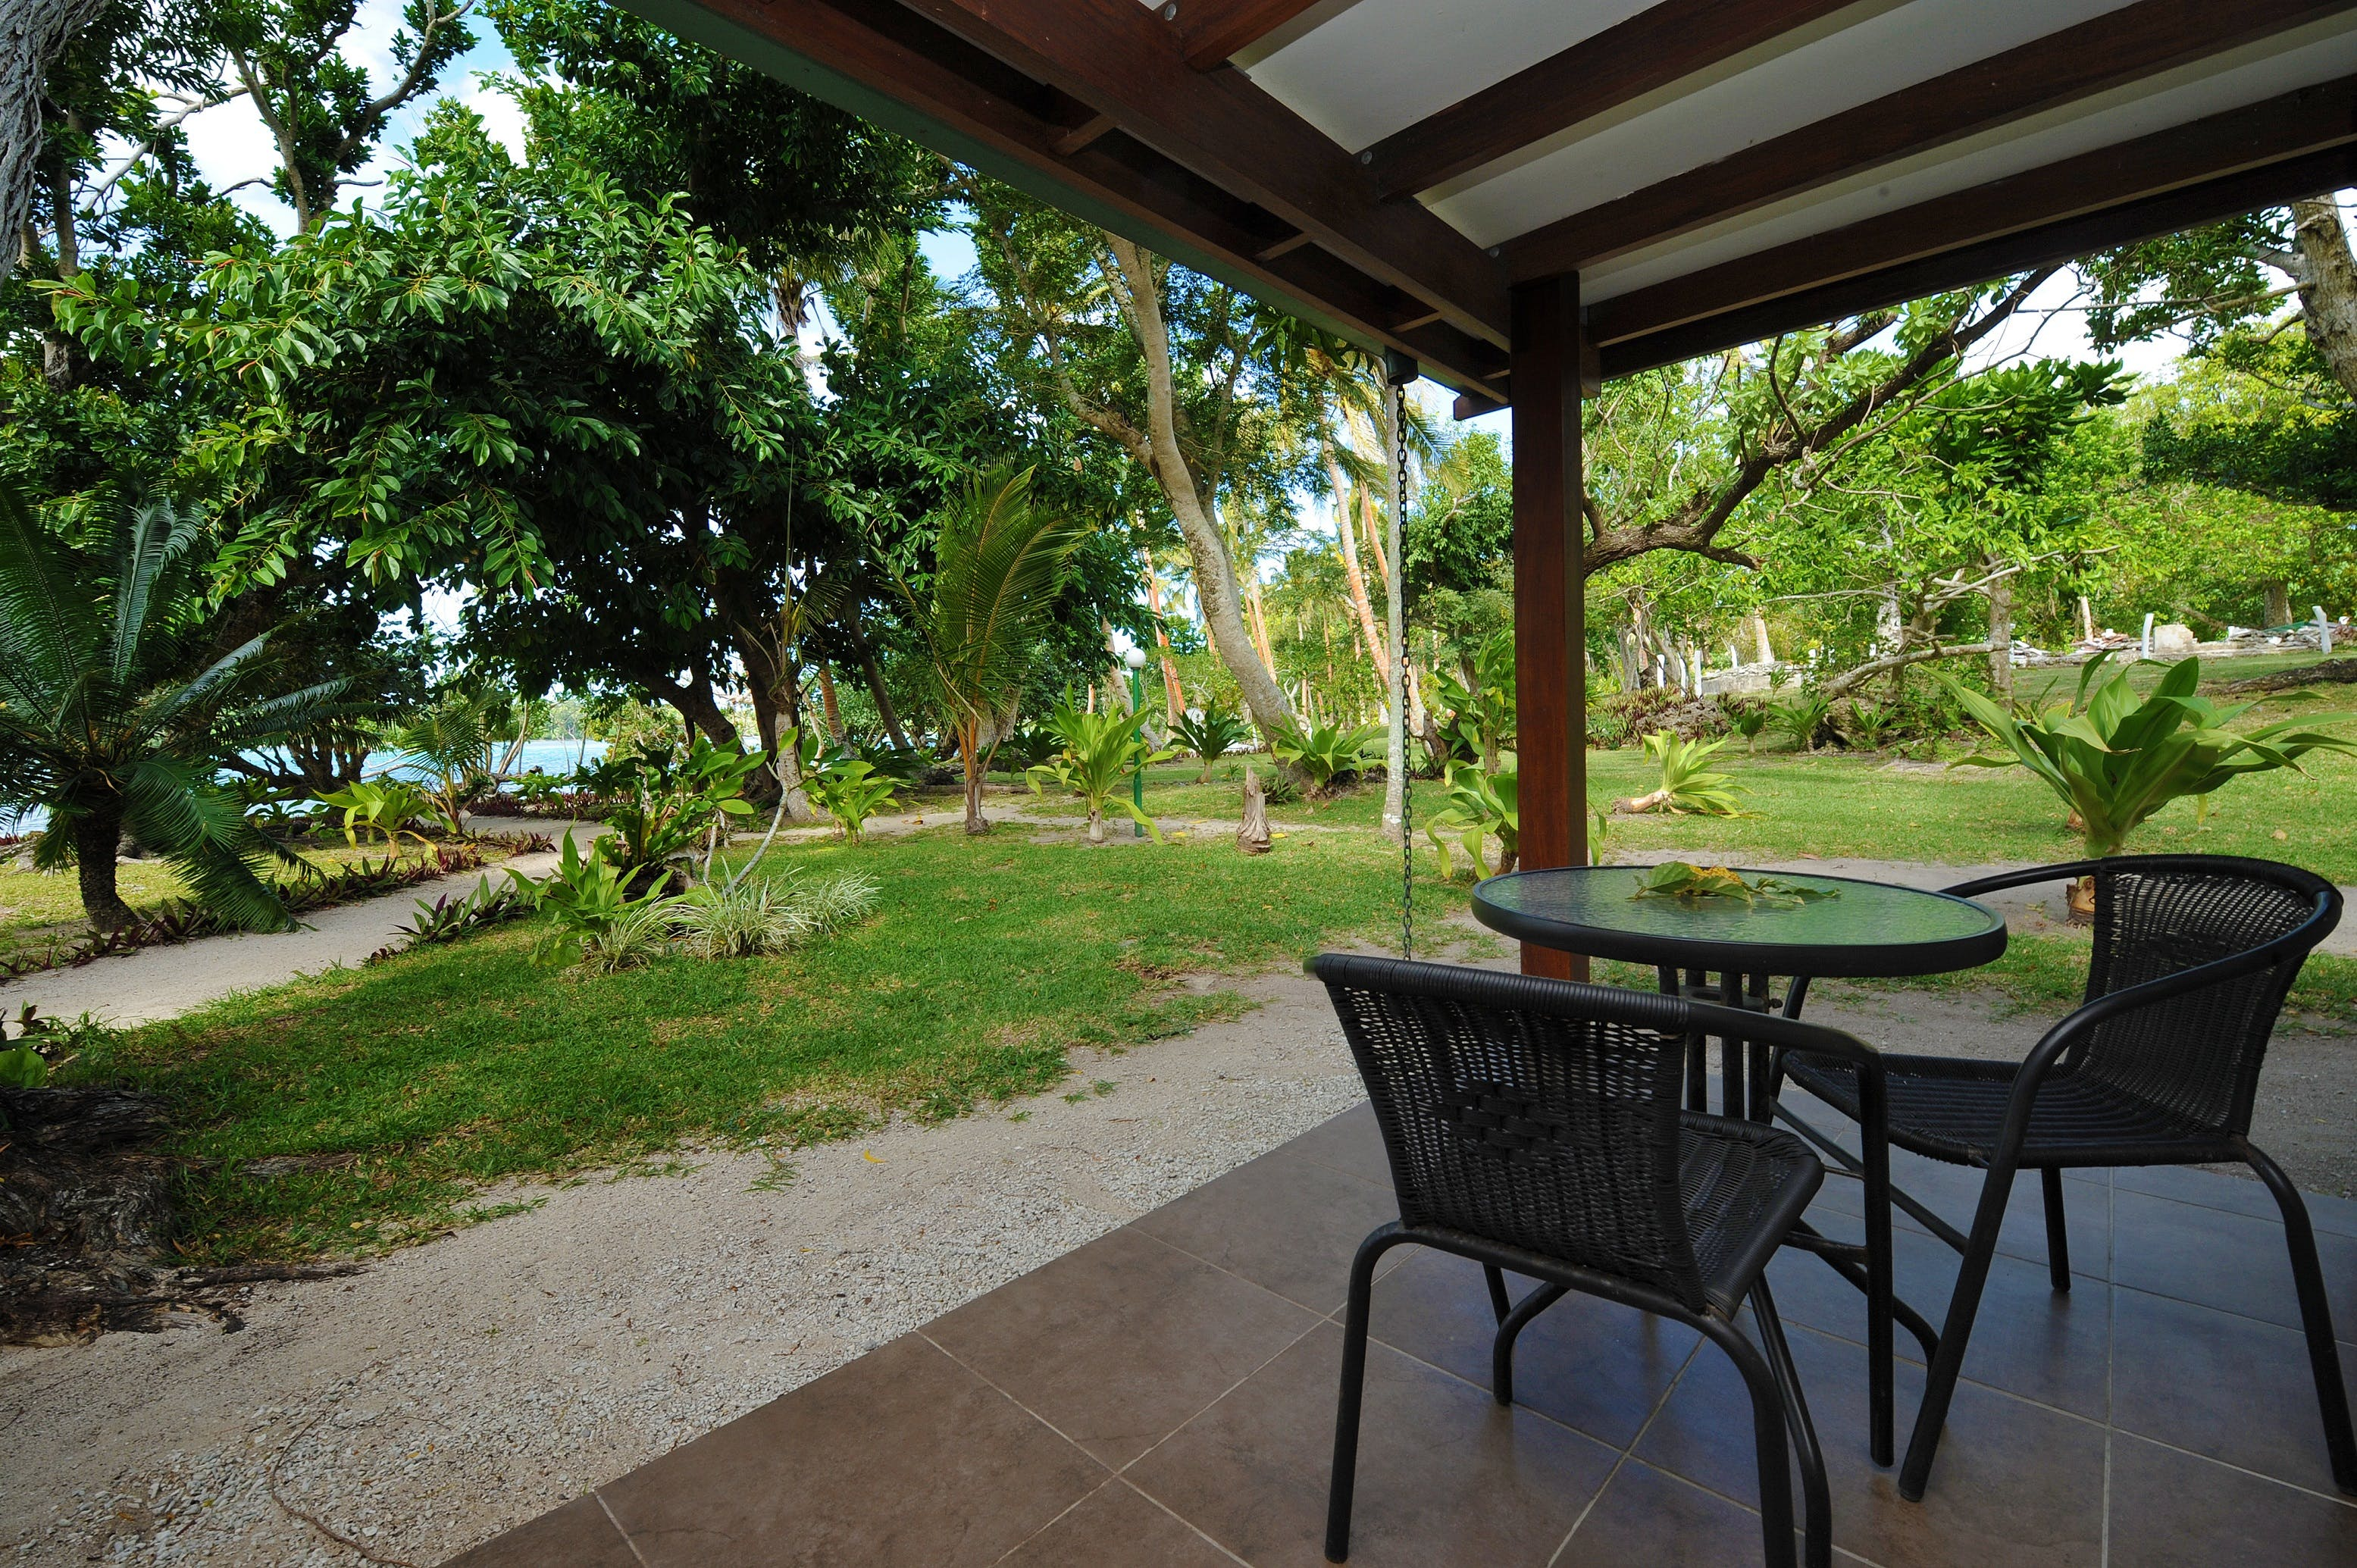 Garden Room - Outdoor deck Garden Rooms erakor island resort & spa #erakorislandresort #vanuatuholidays